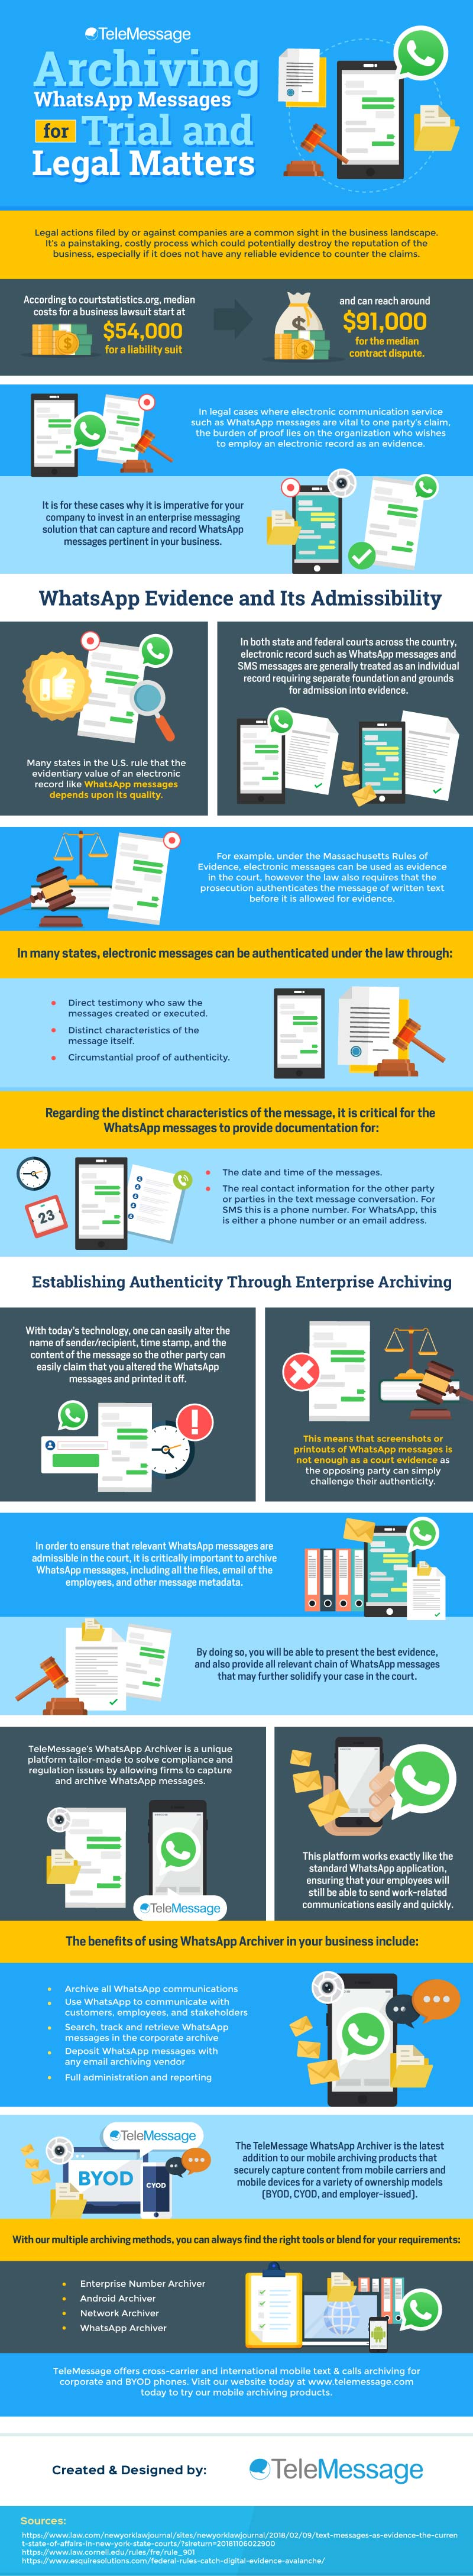 Archiving WhatsApp Messages for Trial and Legal Matters (Infographic) 1